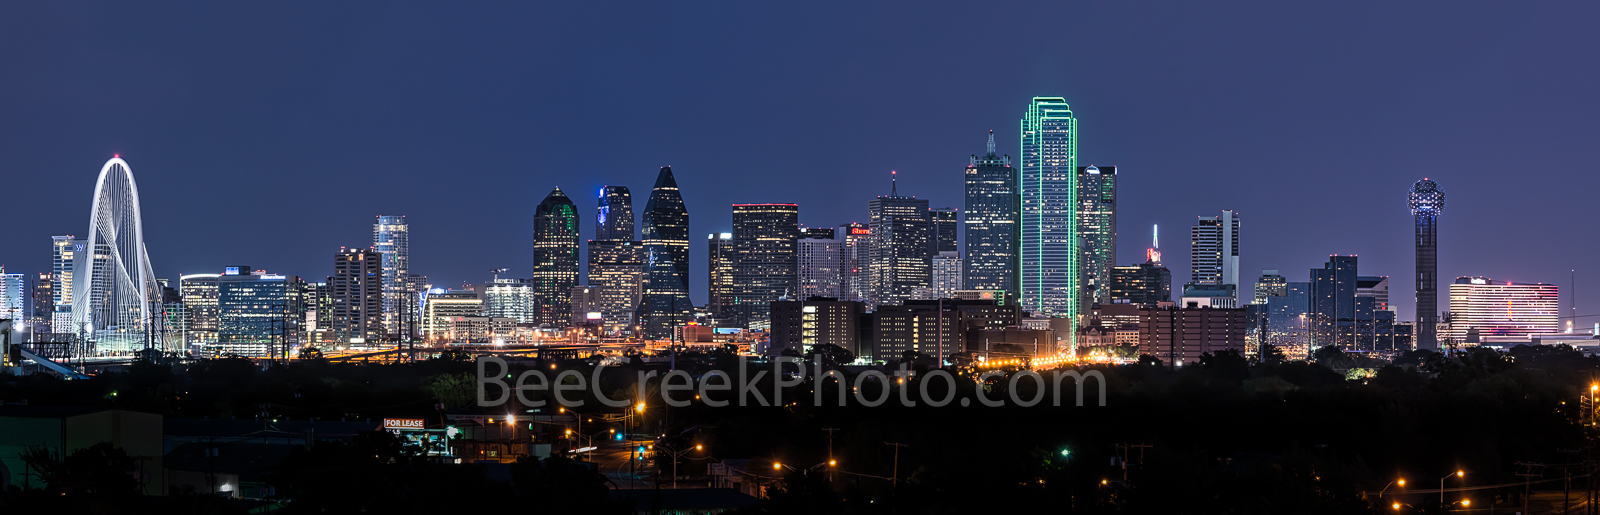 Dallas, skyline, Margaret Hunt Hill bridge, Omni, Bank of america, plaza,  Reunion Tower, Fountain Plaza, cityscape, cityscapes, iconic,  dark, downtown, high rise, images of dallas, night, panorama, , photo